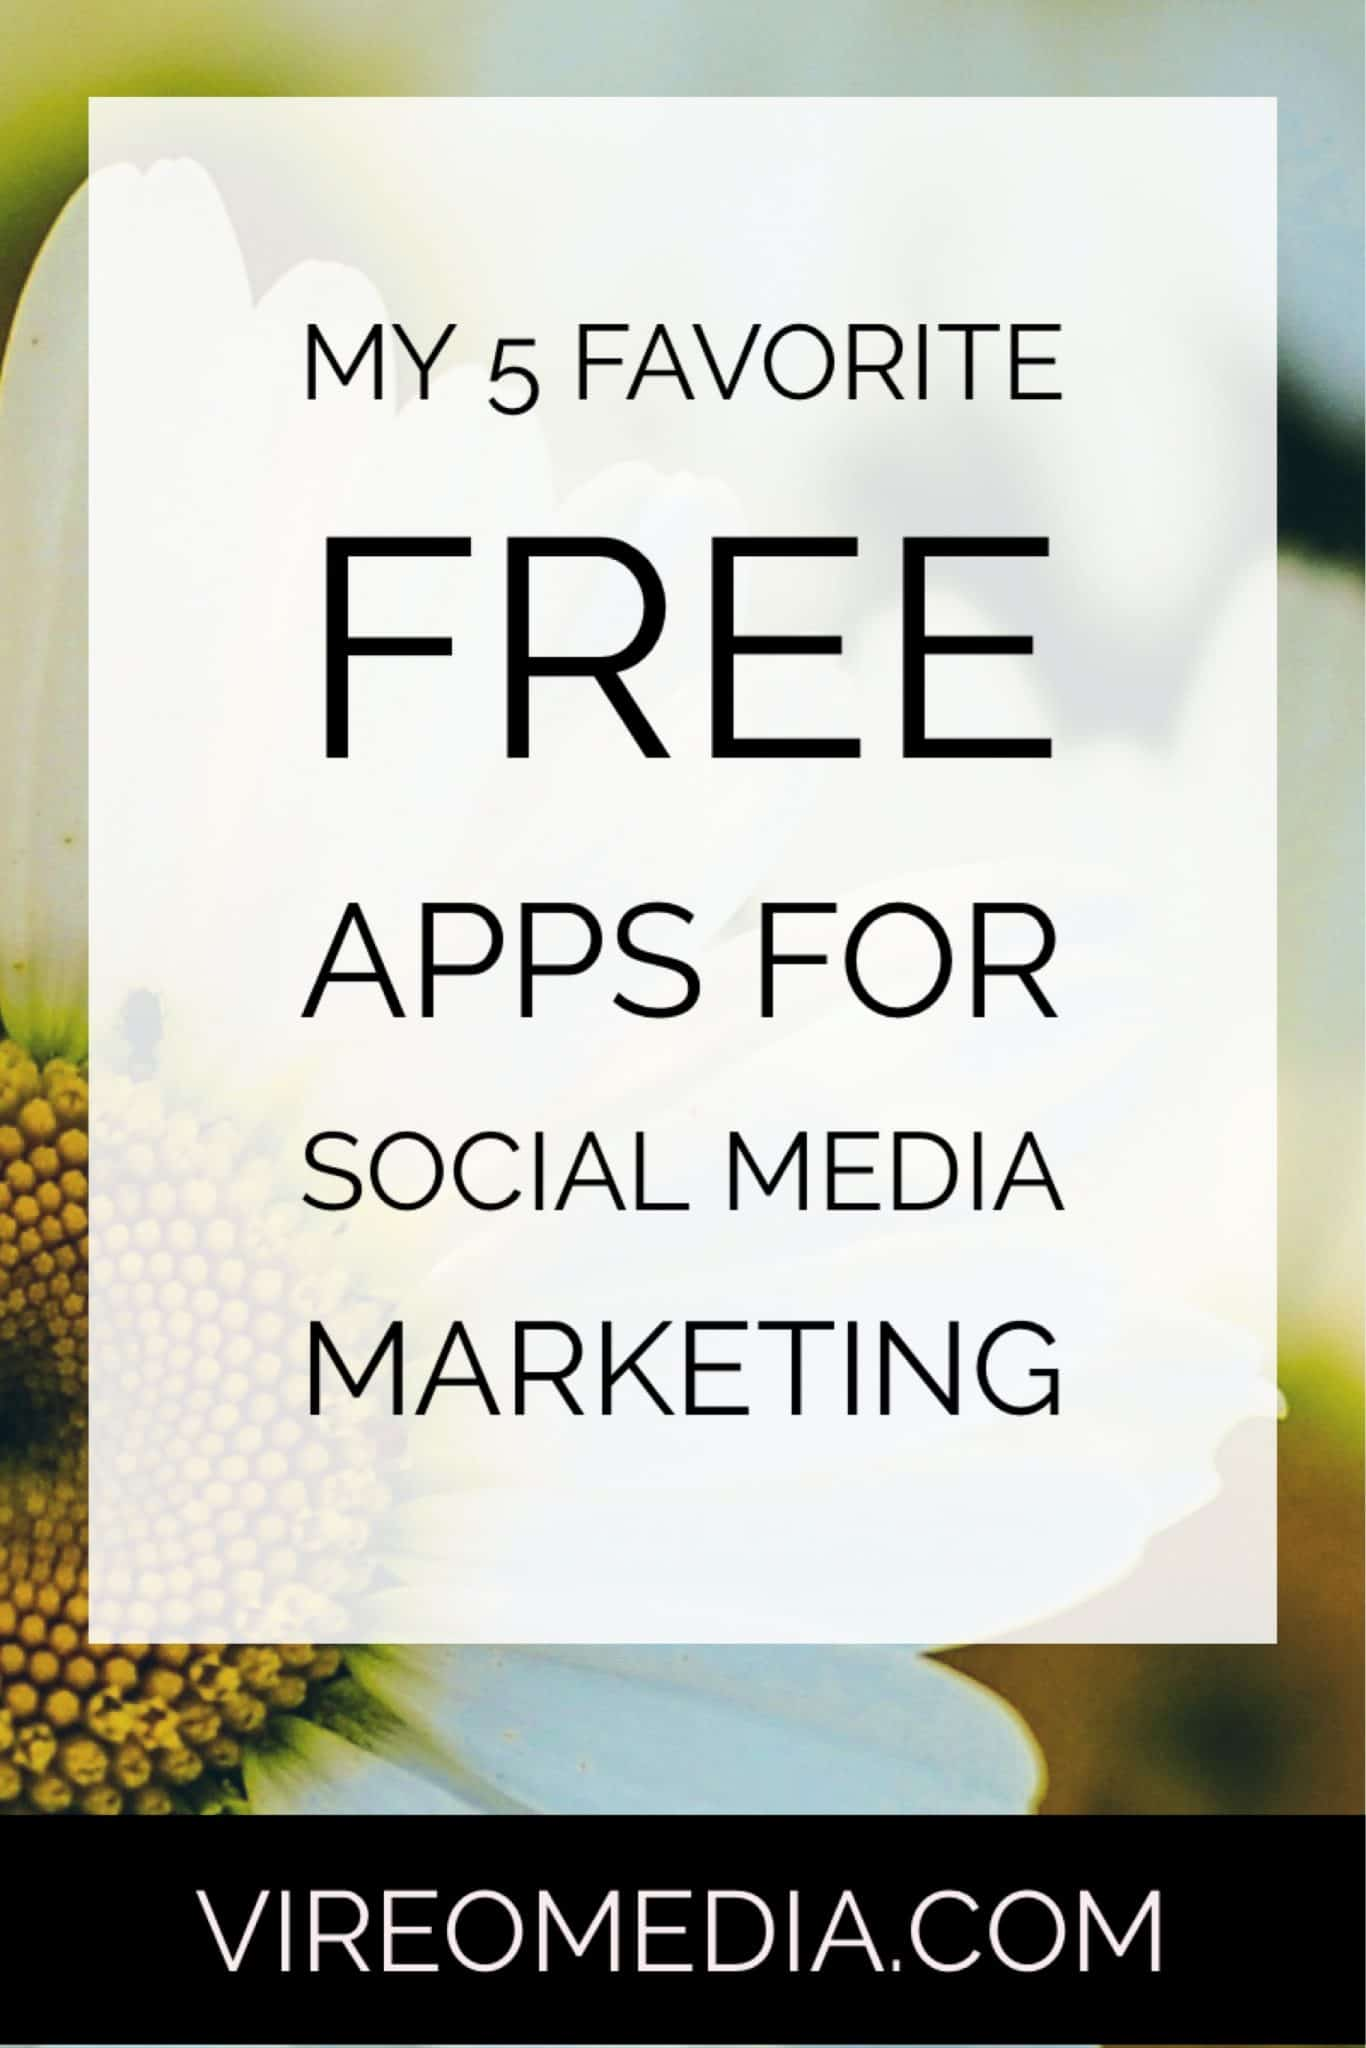 My 5 Favorite Free apps for social media Marketing